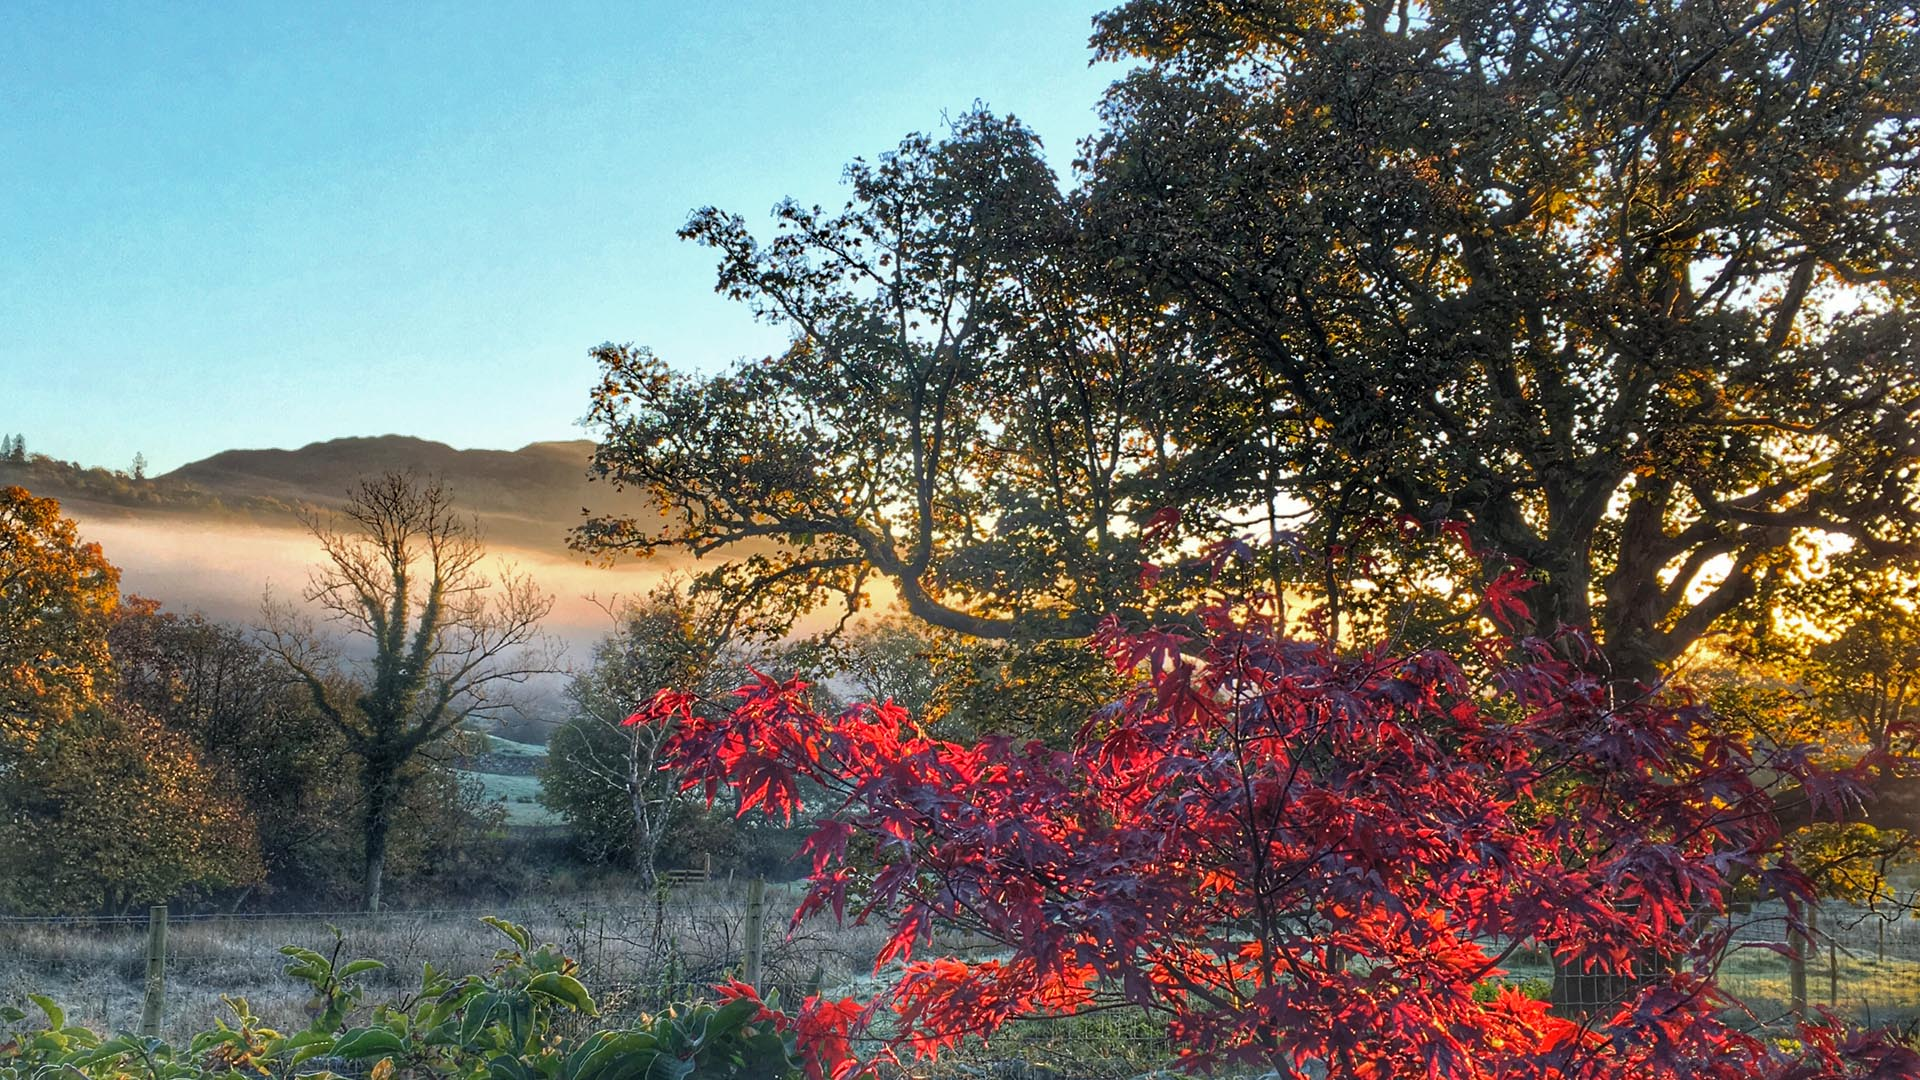 Autumn Staycation at Elterwater Hostel in the Lake District